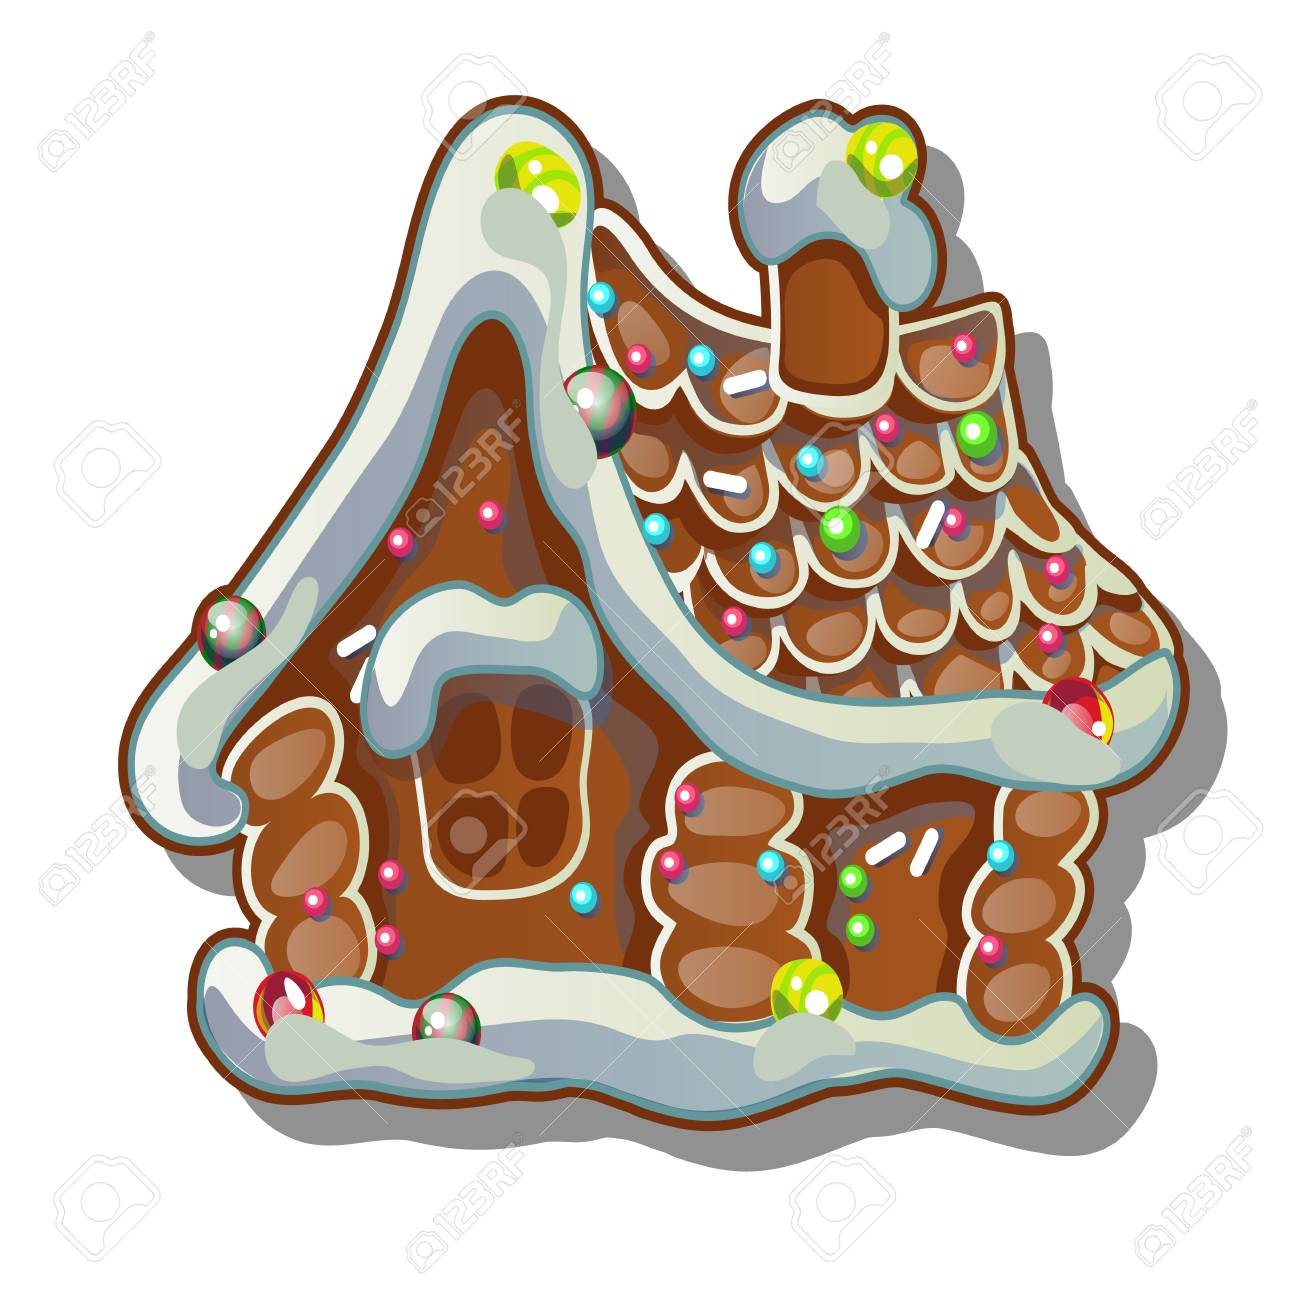 Cartoon Rustic Wooden House In Winter Gingerbread House Sketch